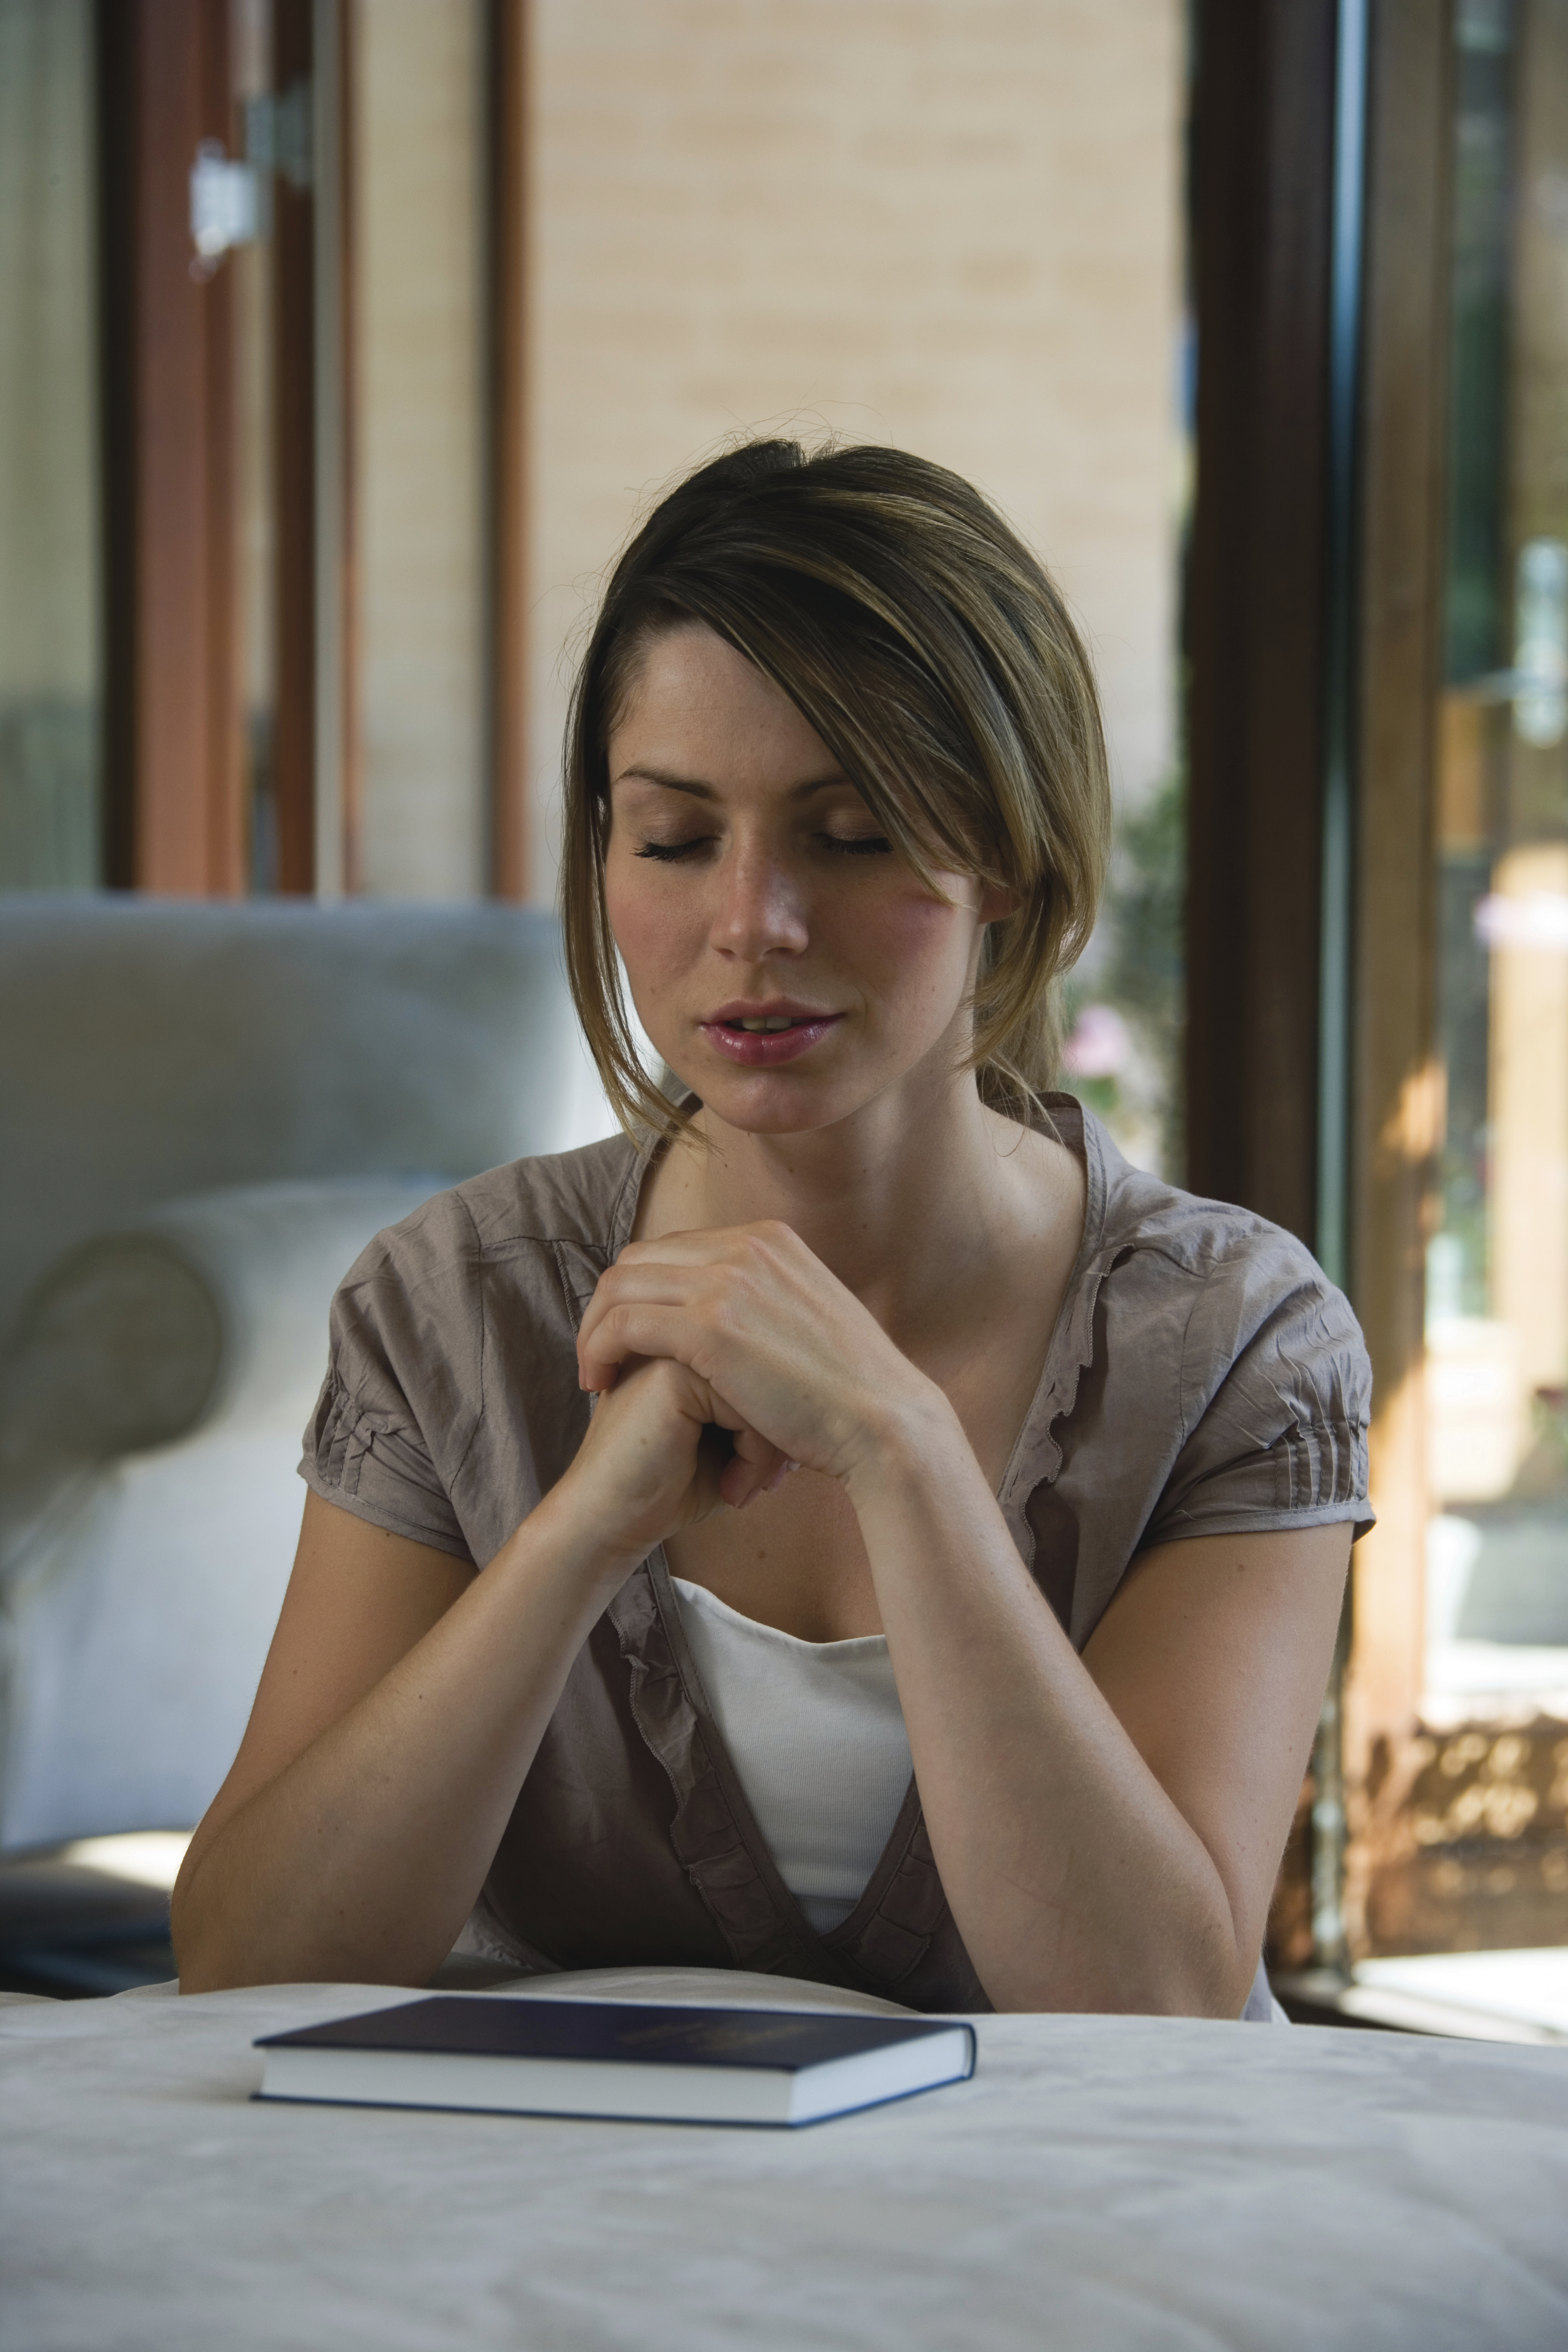 A woman prays during scripture study.